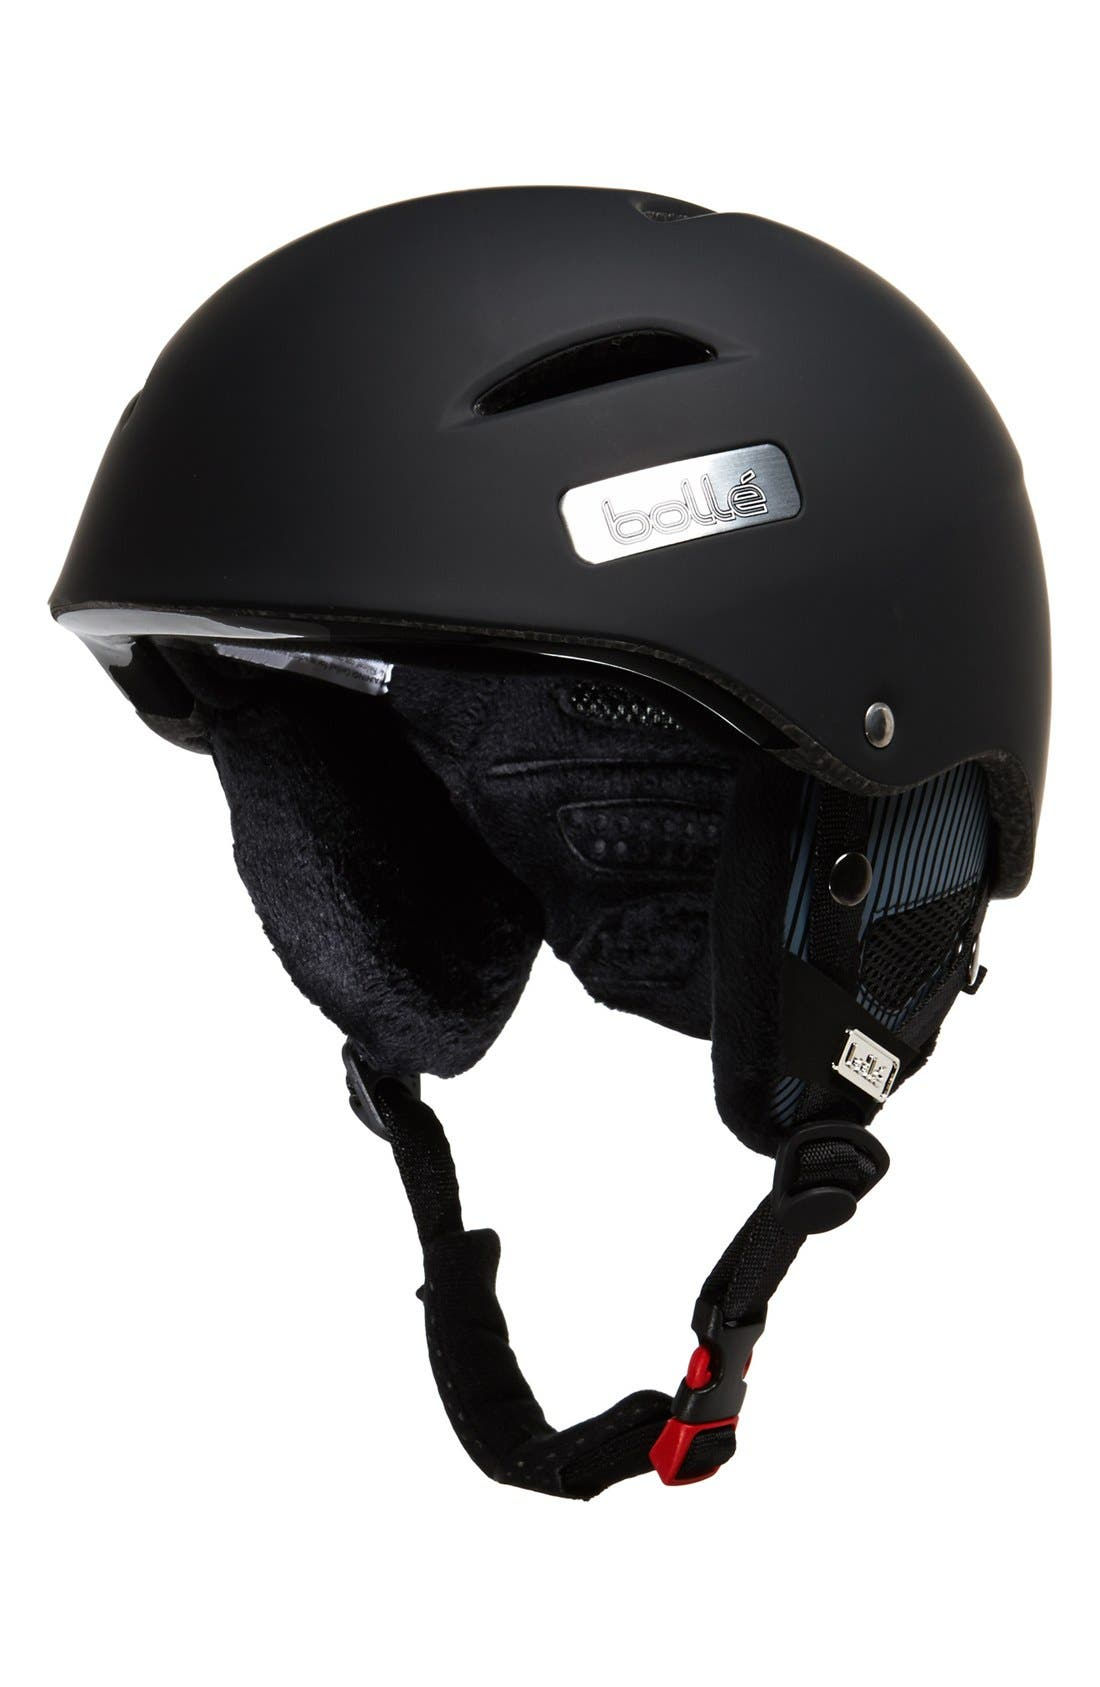 Alternate Image 1 Selected - Bolle 'B-Star' Snowboard Helmet